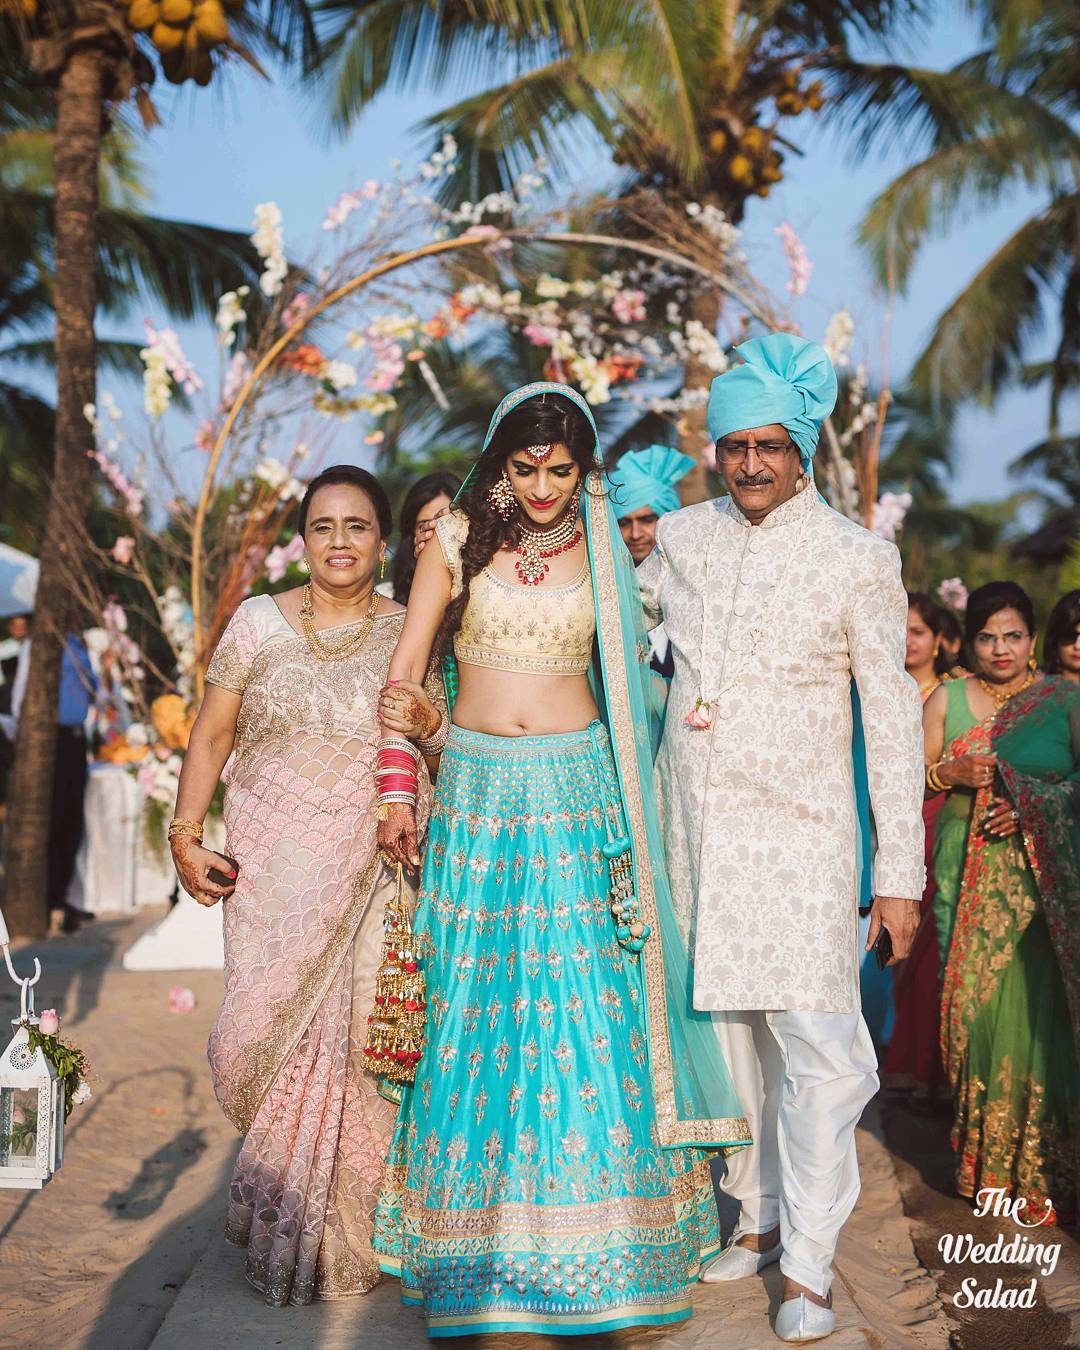 Best bride entry - with both her parents and father wearing safa in same shade as her lehenga